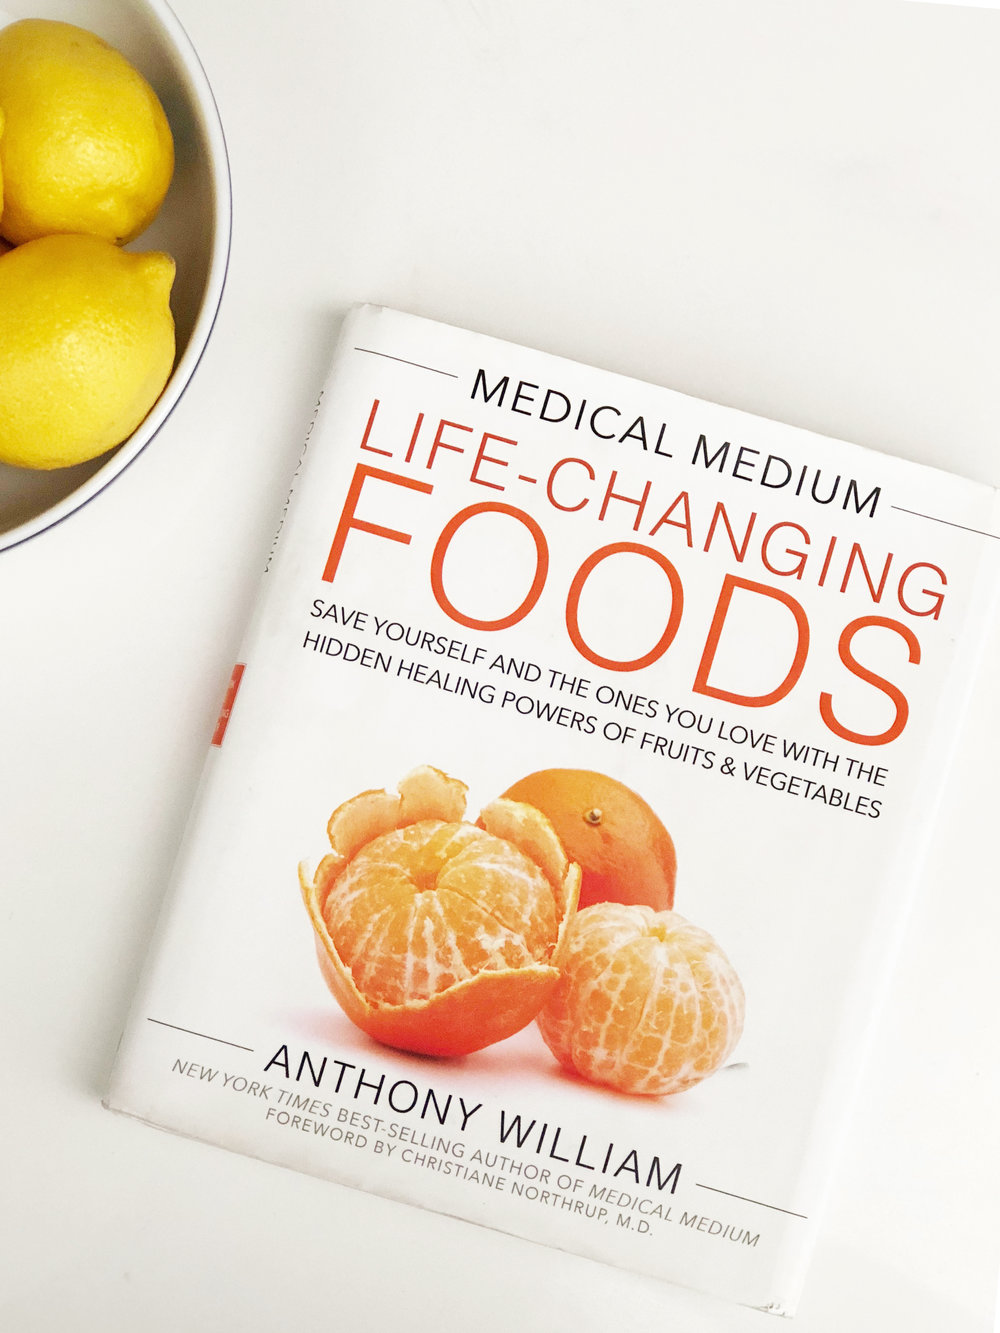 life-changing-foods-book.jpg